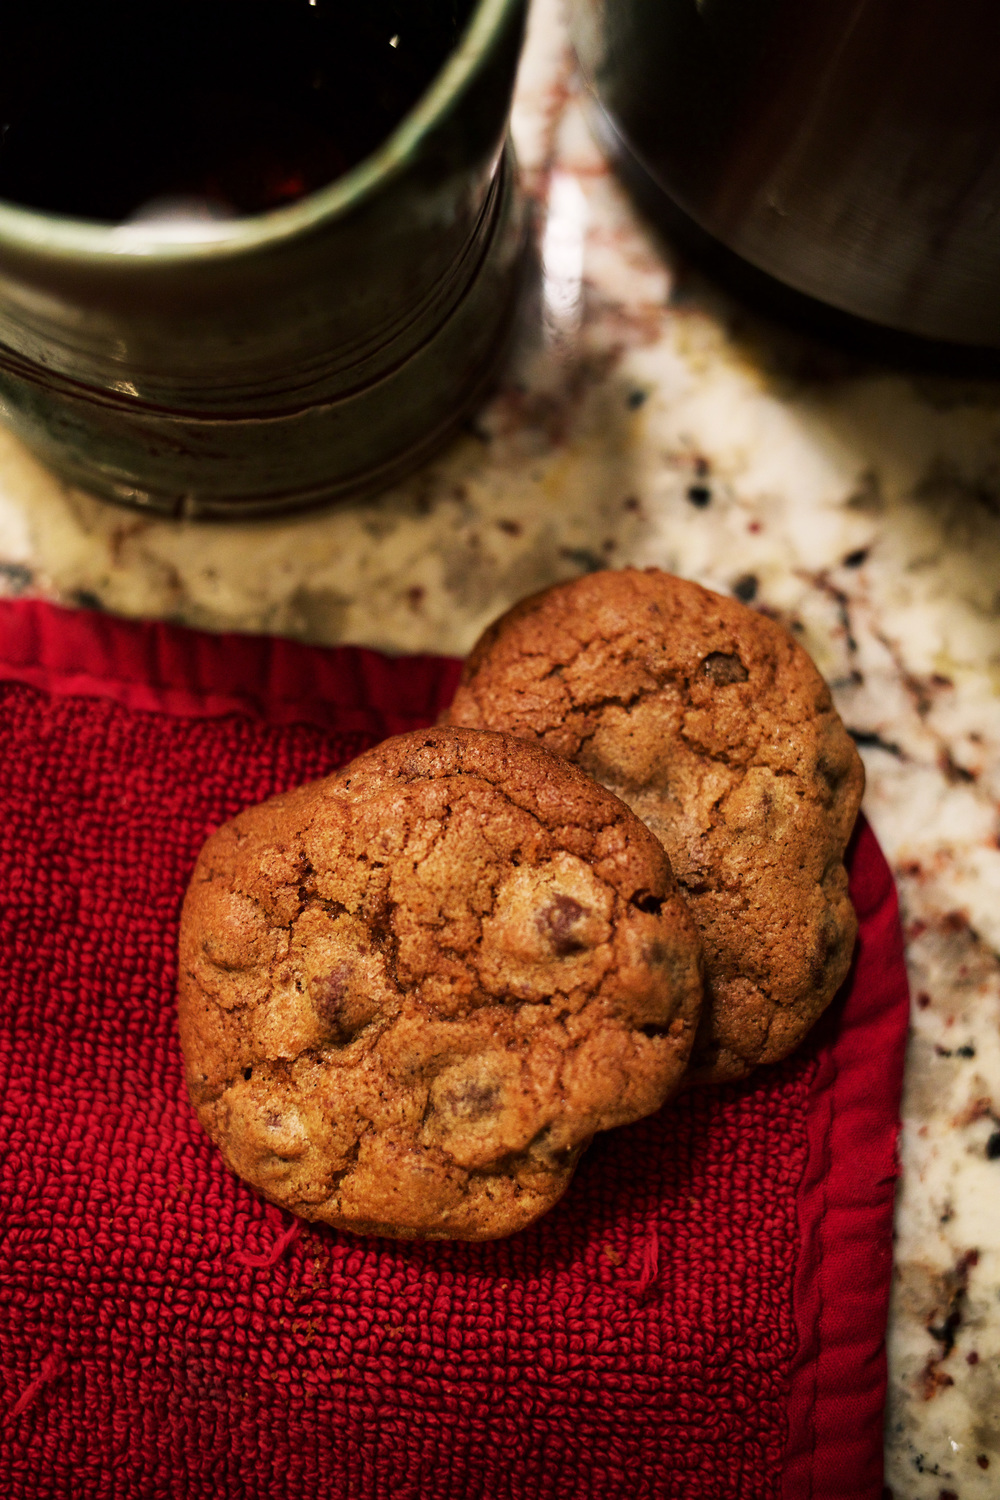 ChocolateChipCookies02.jpg